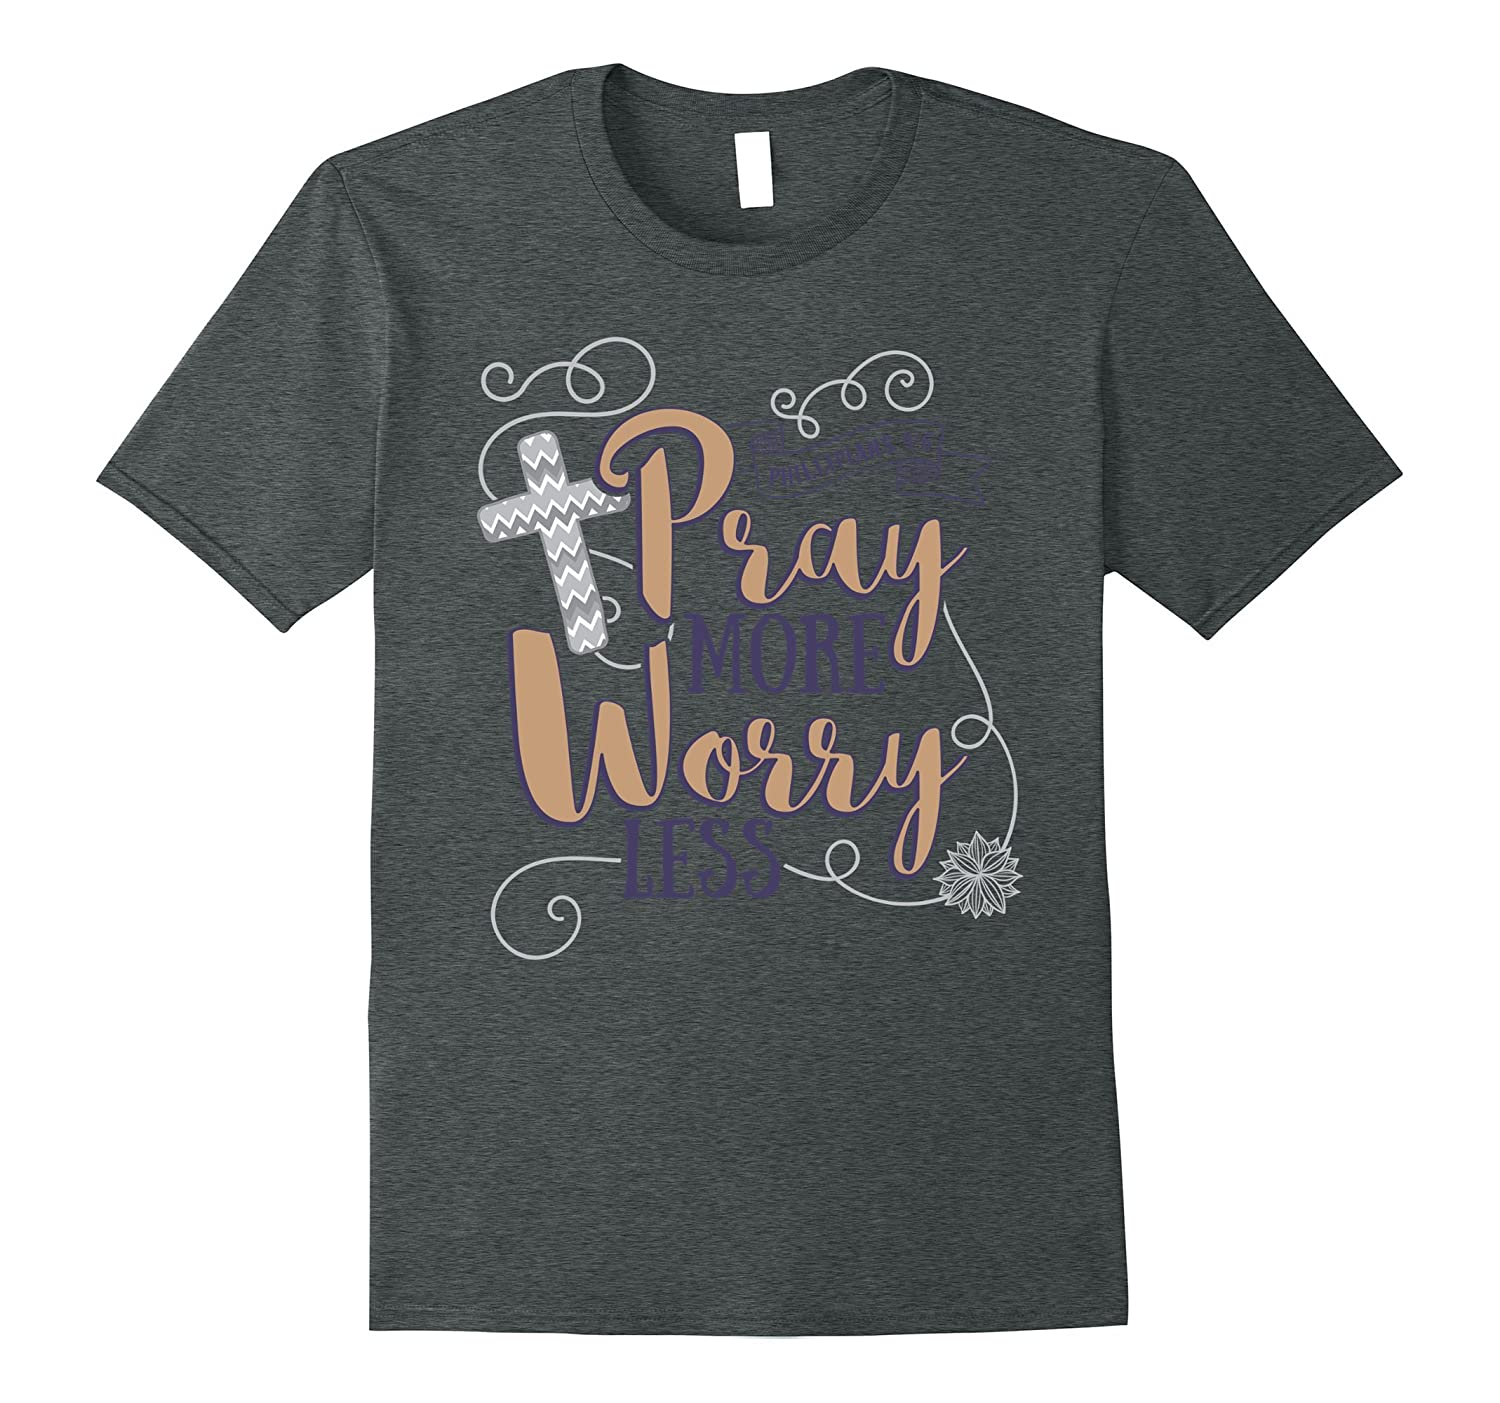 Pray more worry less christian bible quote t shirt cd Bible t shirt quotes